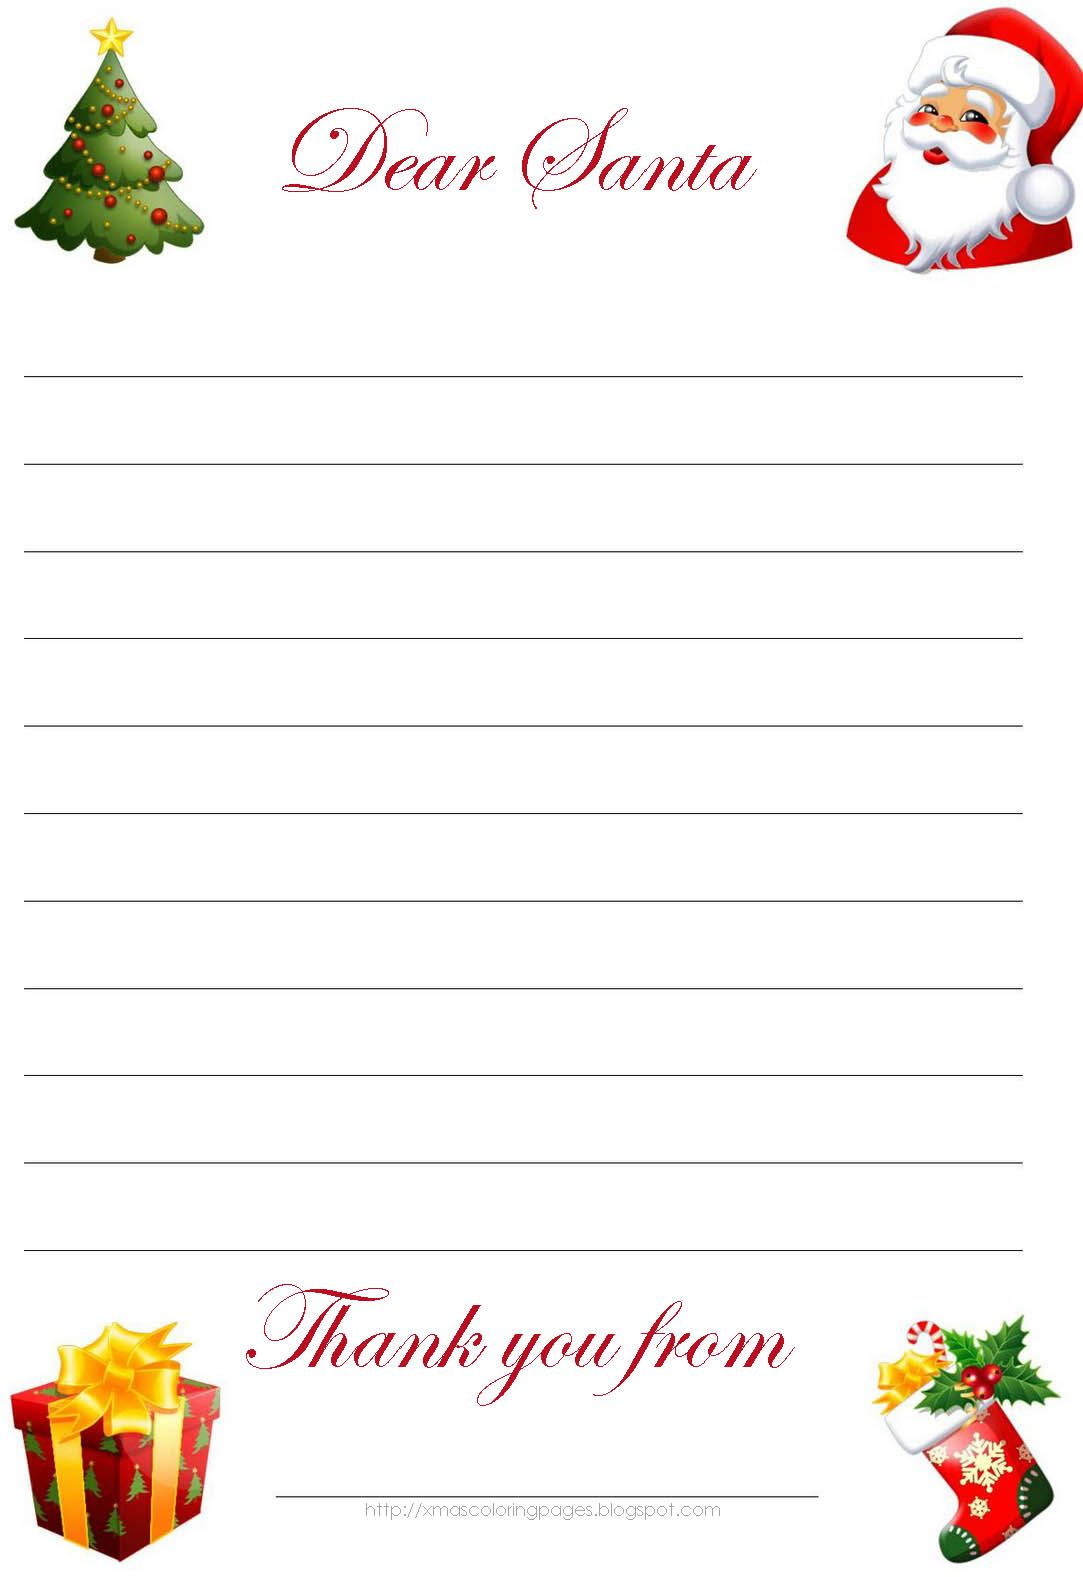 Dear Santa Letter Coloring Page With Hundreds Of Free Printable Xmas Pages And Activity